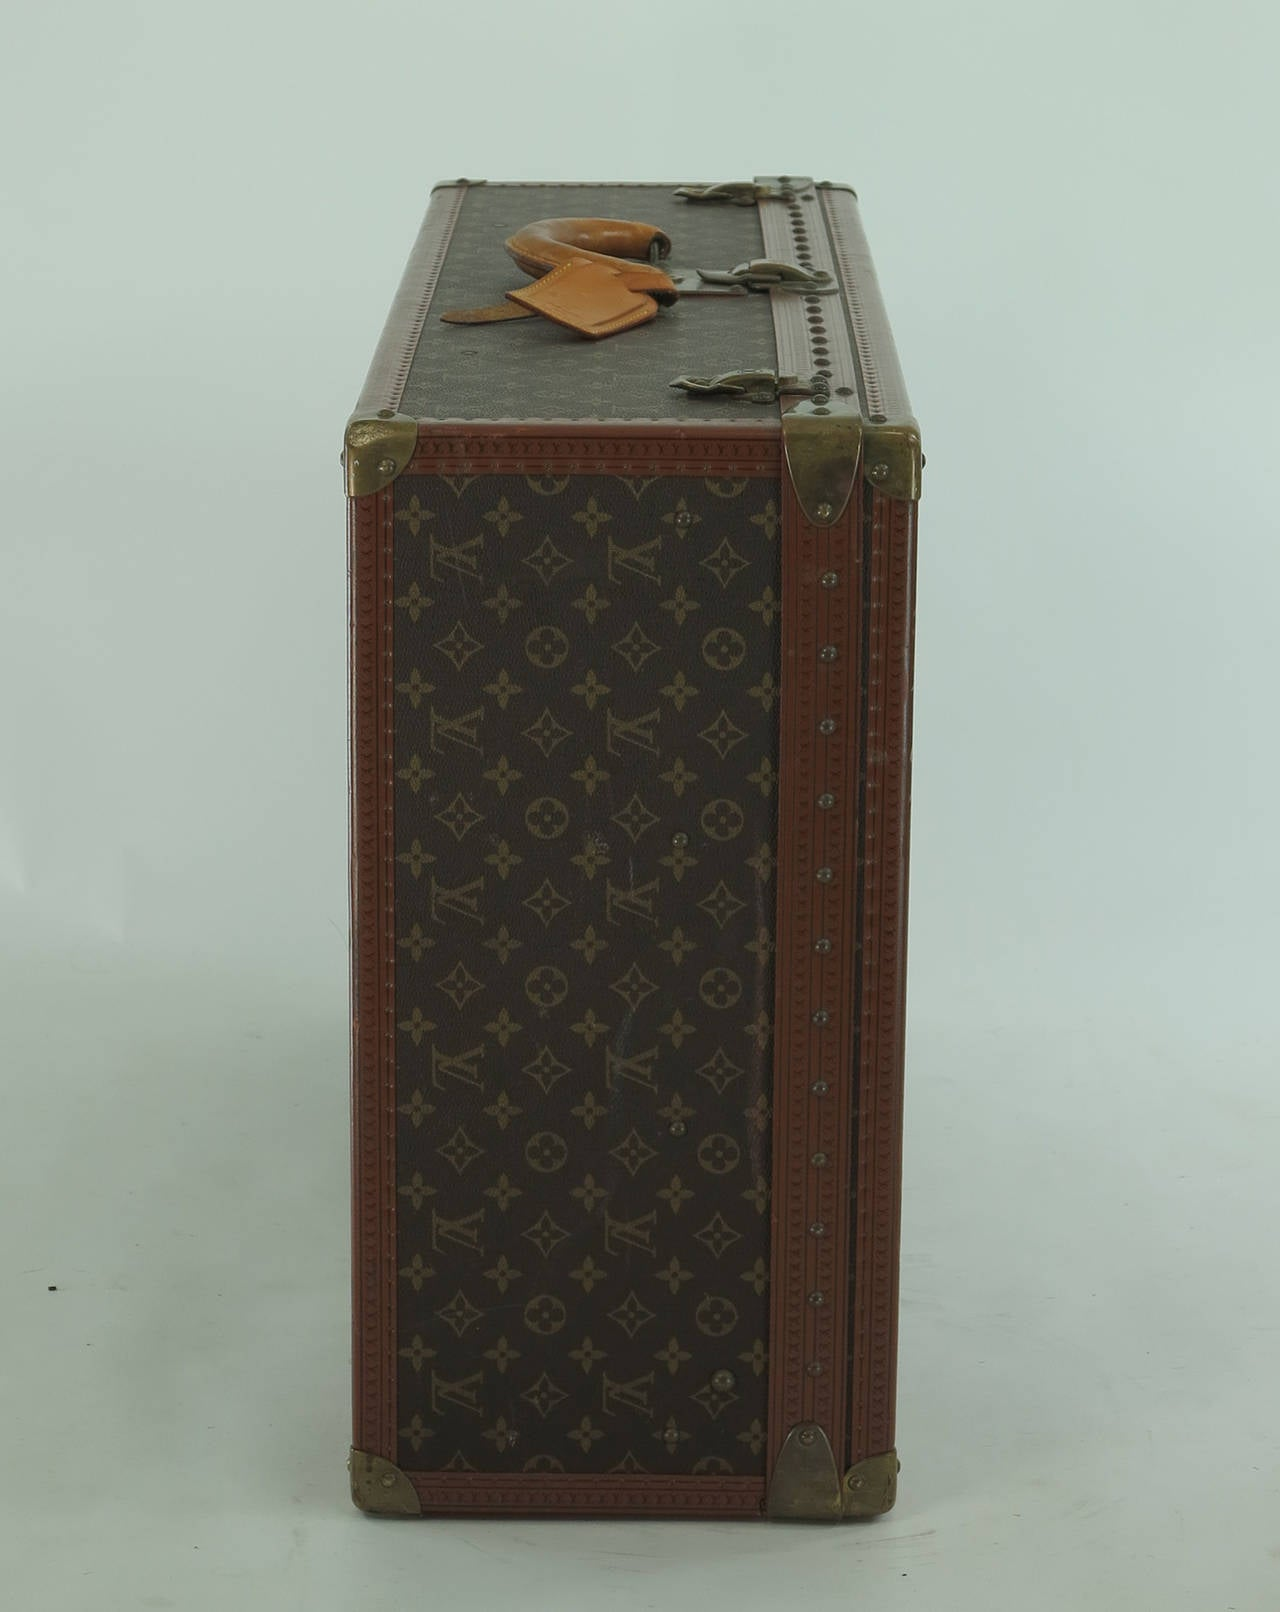 Louis Vuitton Alzar 80 monogram hardside suitcase/trunk, the largest of the Alzar line...This trunk is in excellent pre owned condition, the leather and brasses have a wonderful aged patina...The interior has a removable tray with side tabs for easy